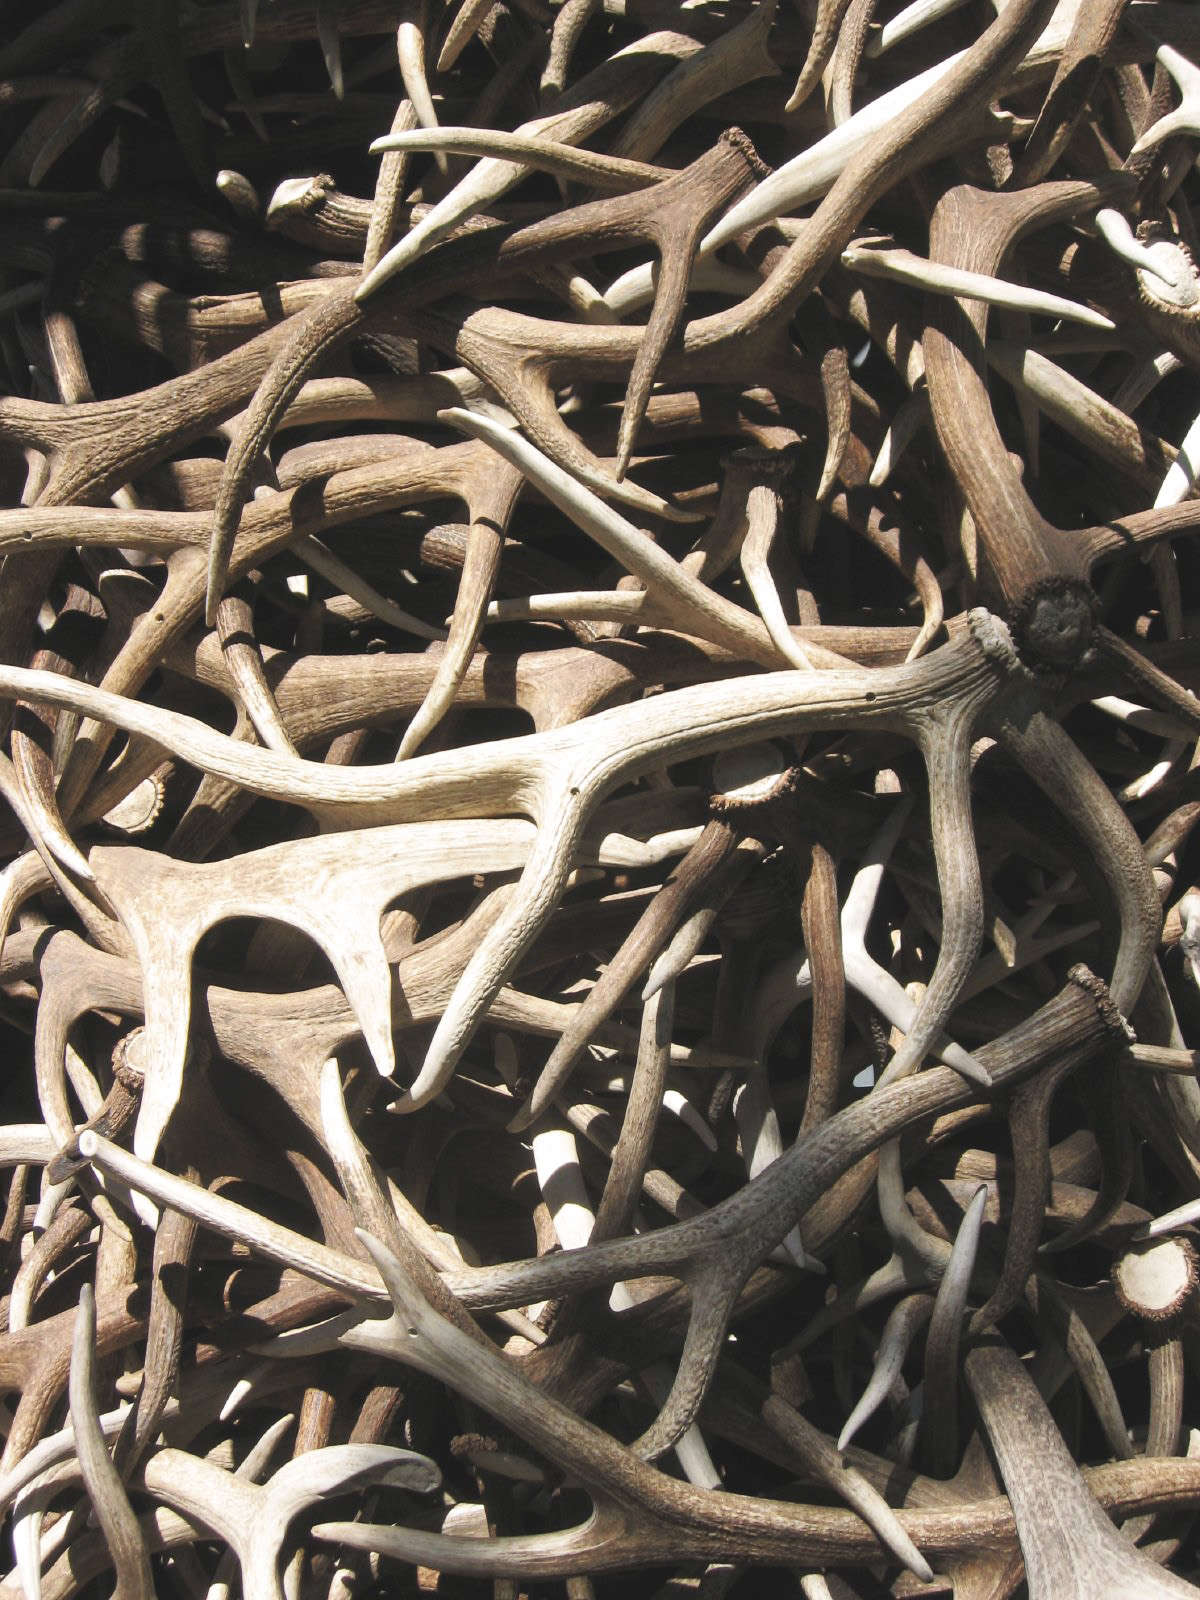 Pile of shed Antlers.